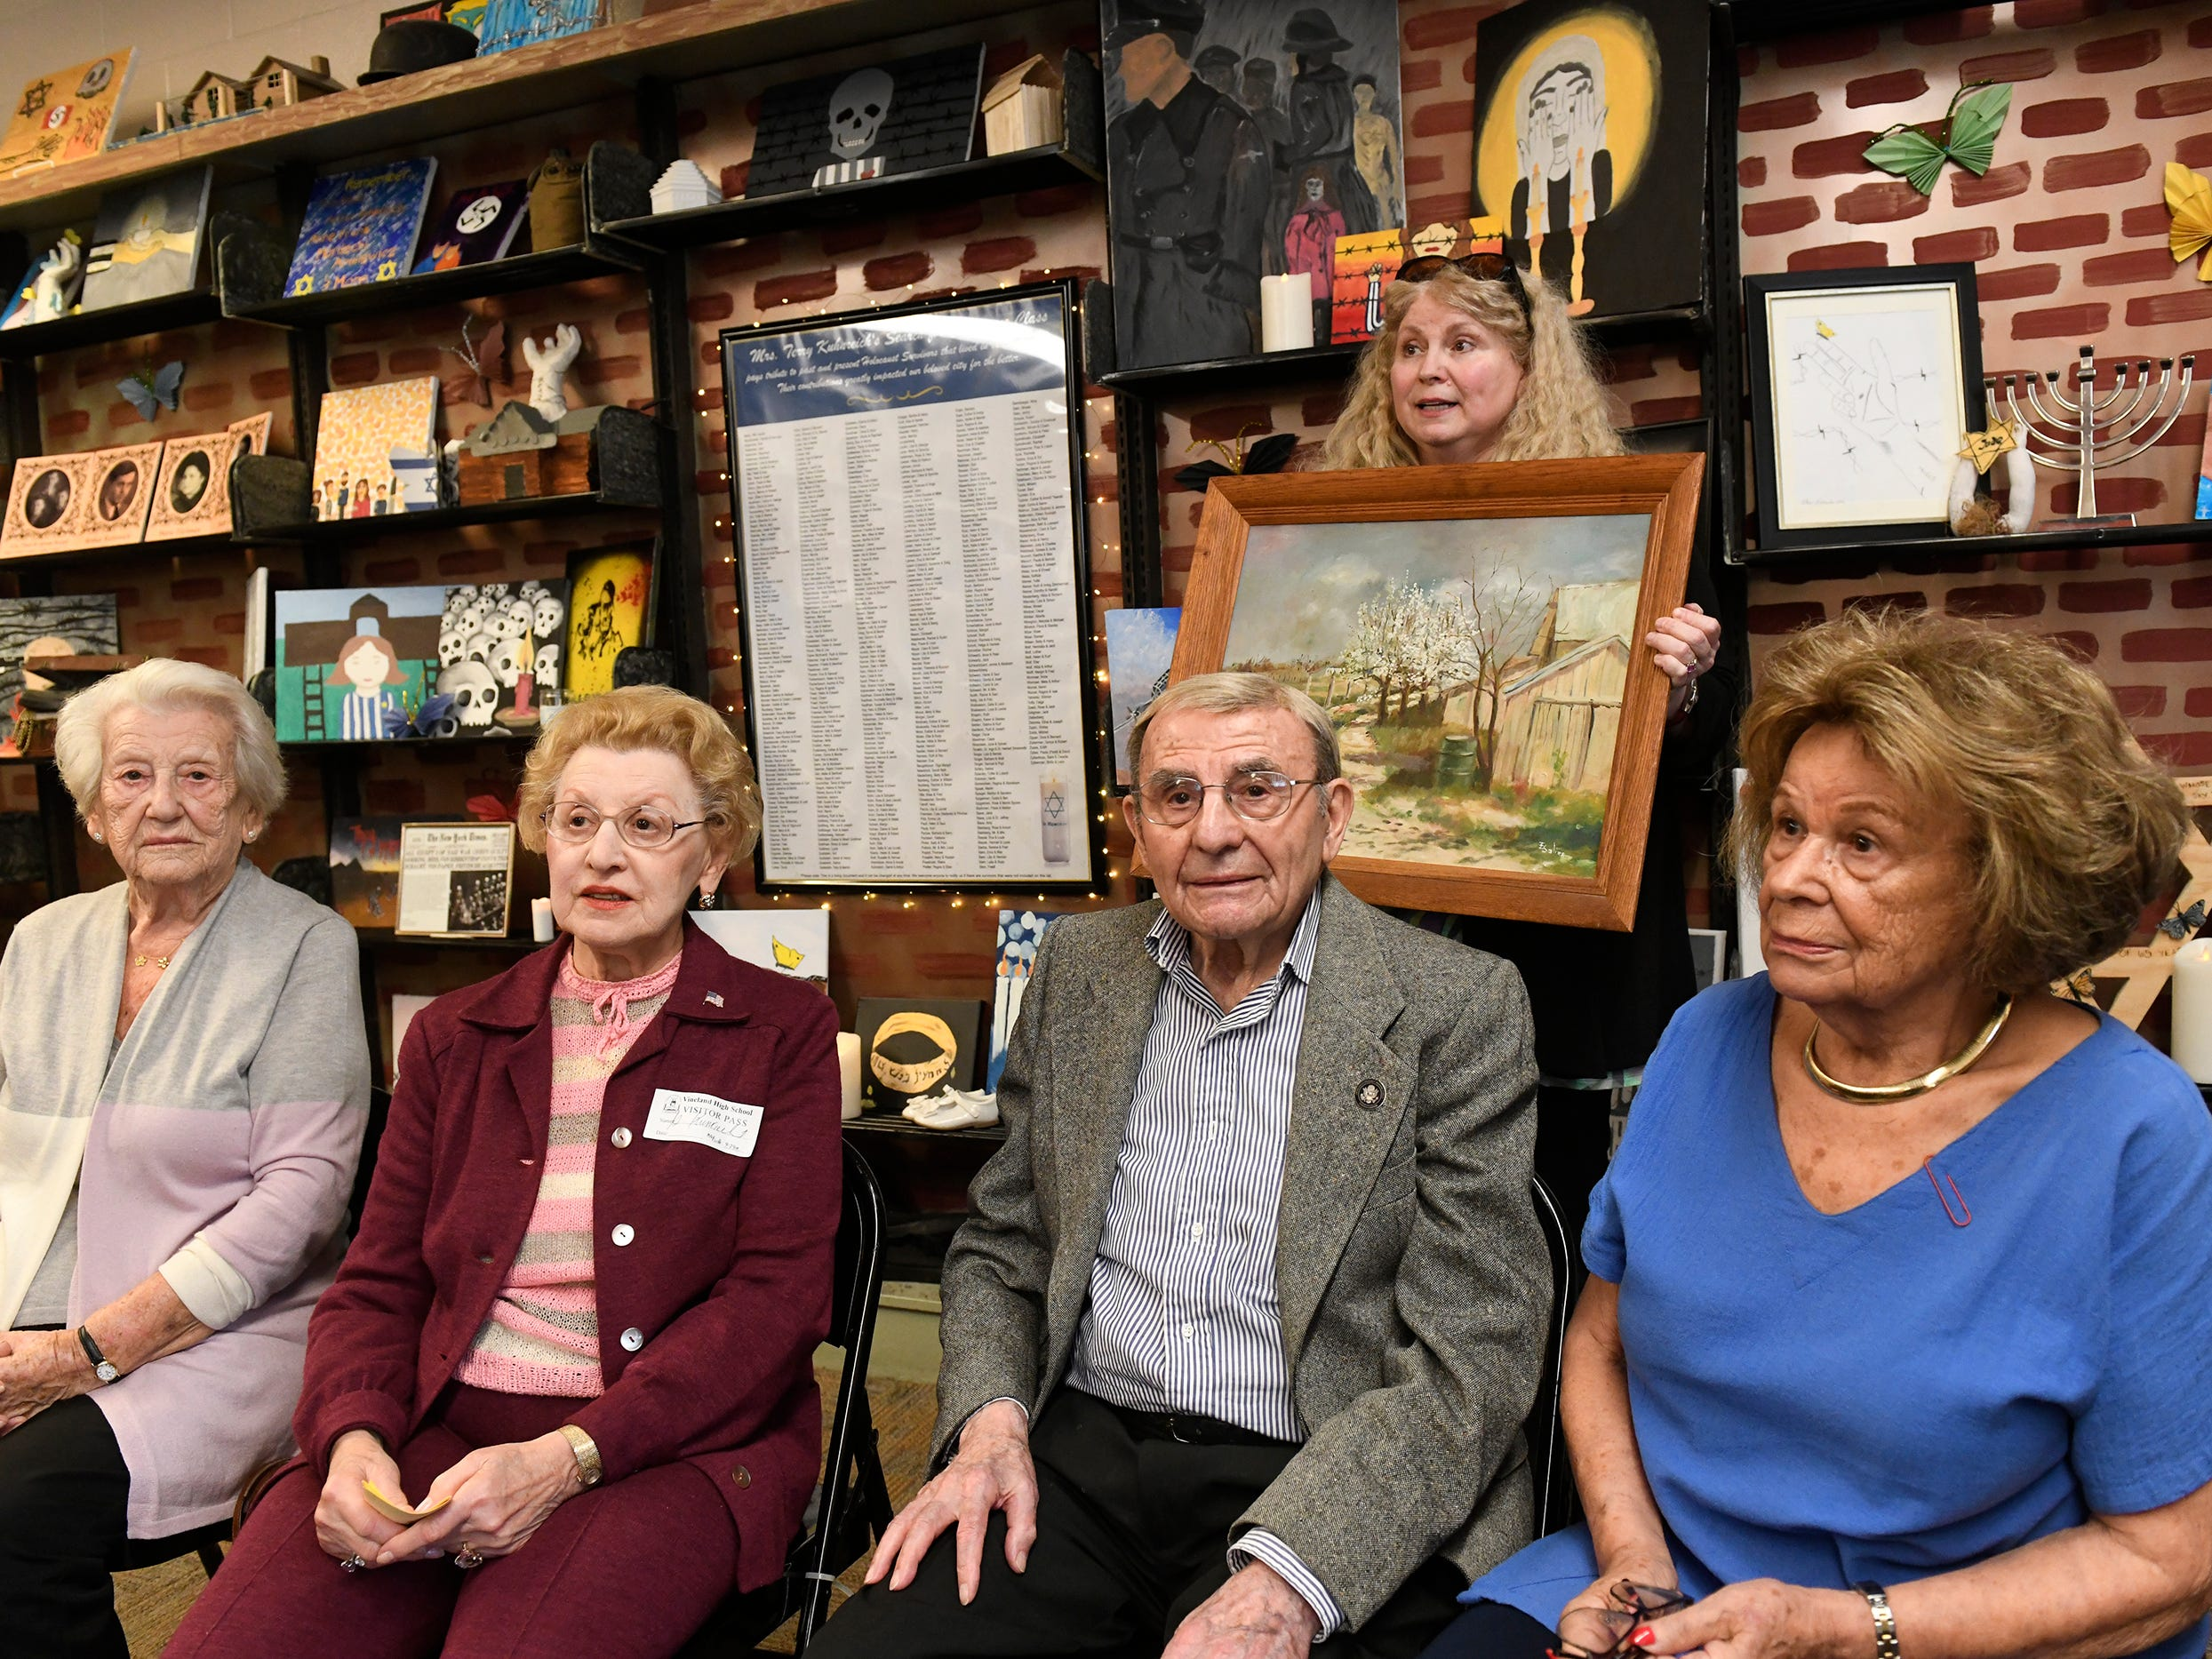 Holocaust survivors left to right, Elizabeth Roth, Genia Kuhnreich, Isadore Randel and Phyllis Dunkleman attend a dedication for the Kuhnreich/Teichman/Media Holocaust Research Center and Permanent Exhibit at Vineland High School.